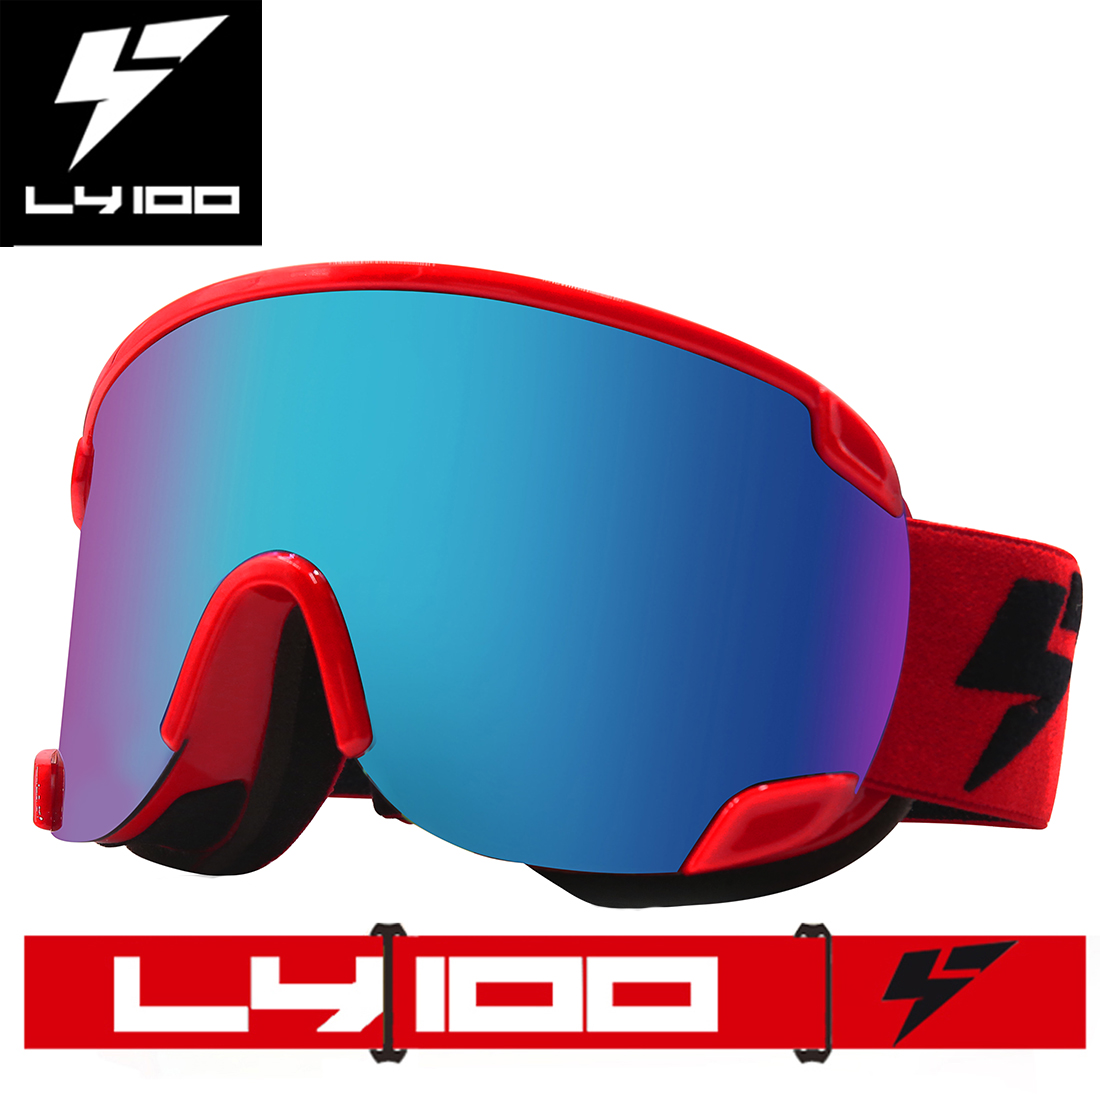 LY-100 Authorized Men Women Snowboard Ski Goggles OTG Anti-fog UV Protection Over Glasses Double Lens Red by